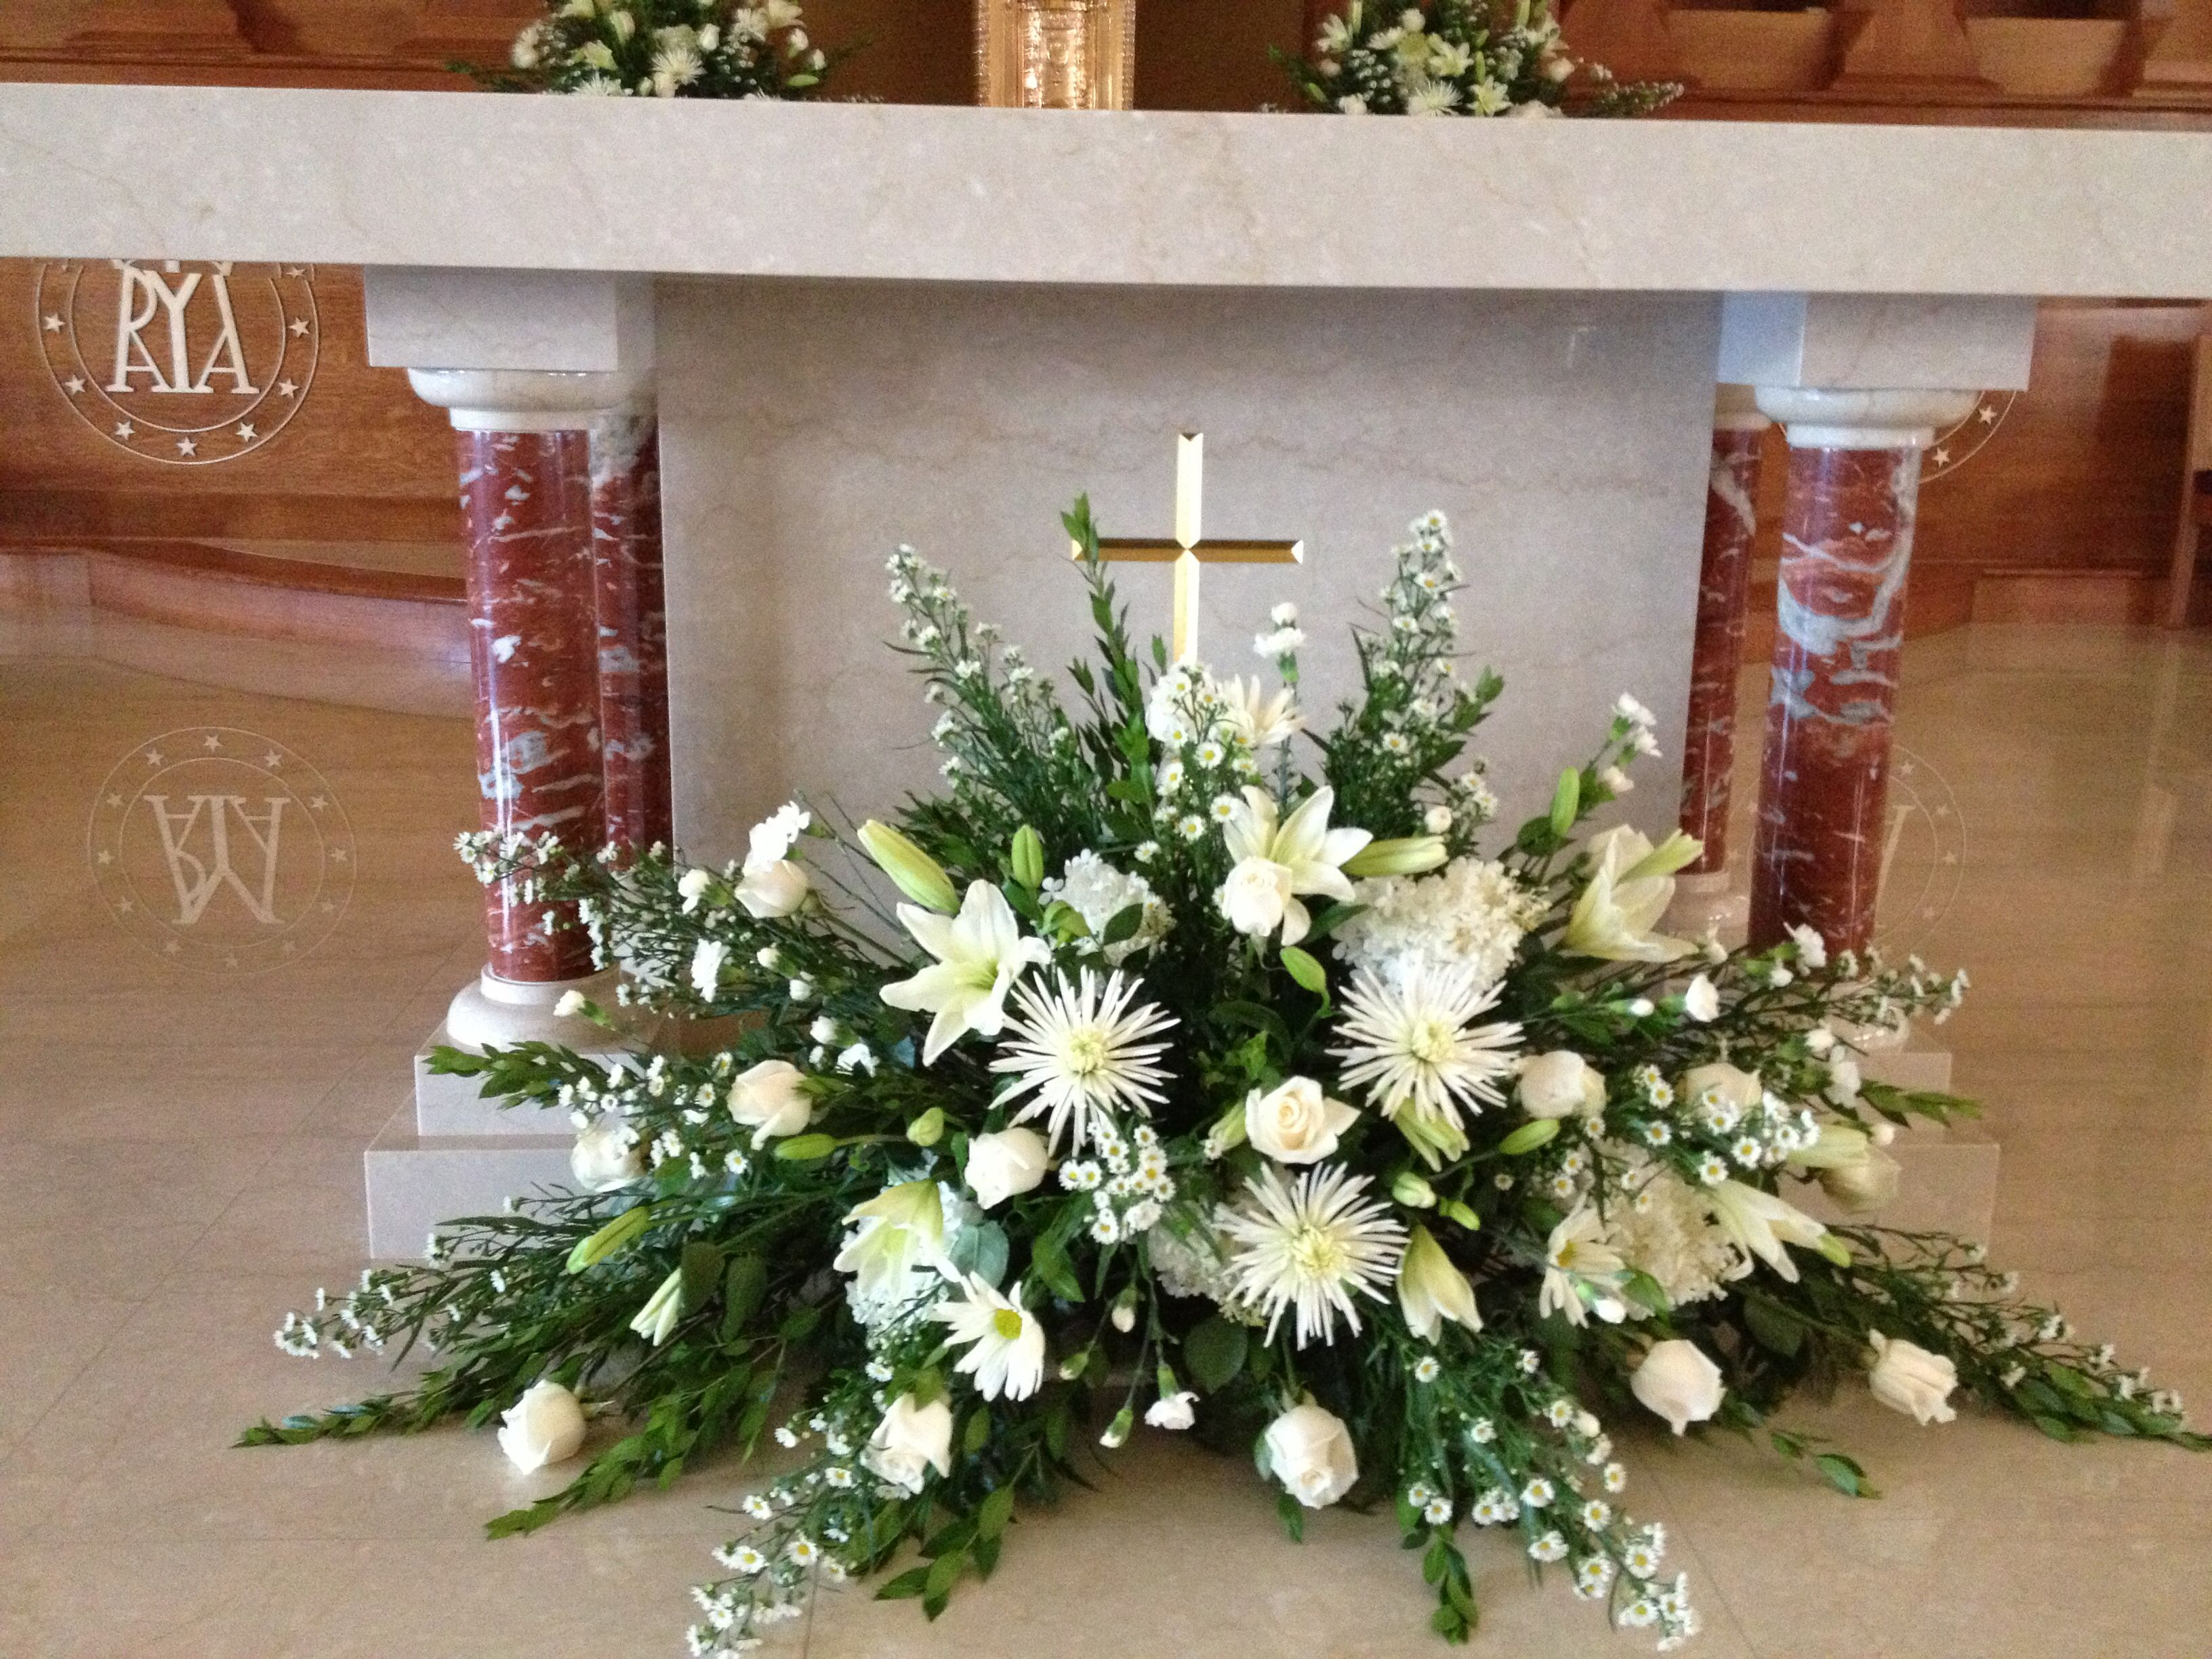 Church arrangement floral arrangements pinterest - Arreglos florales artificiales modernos ...